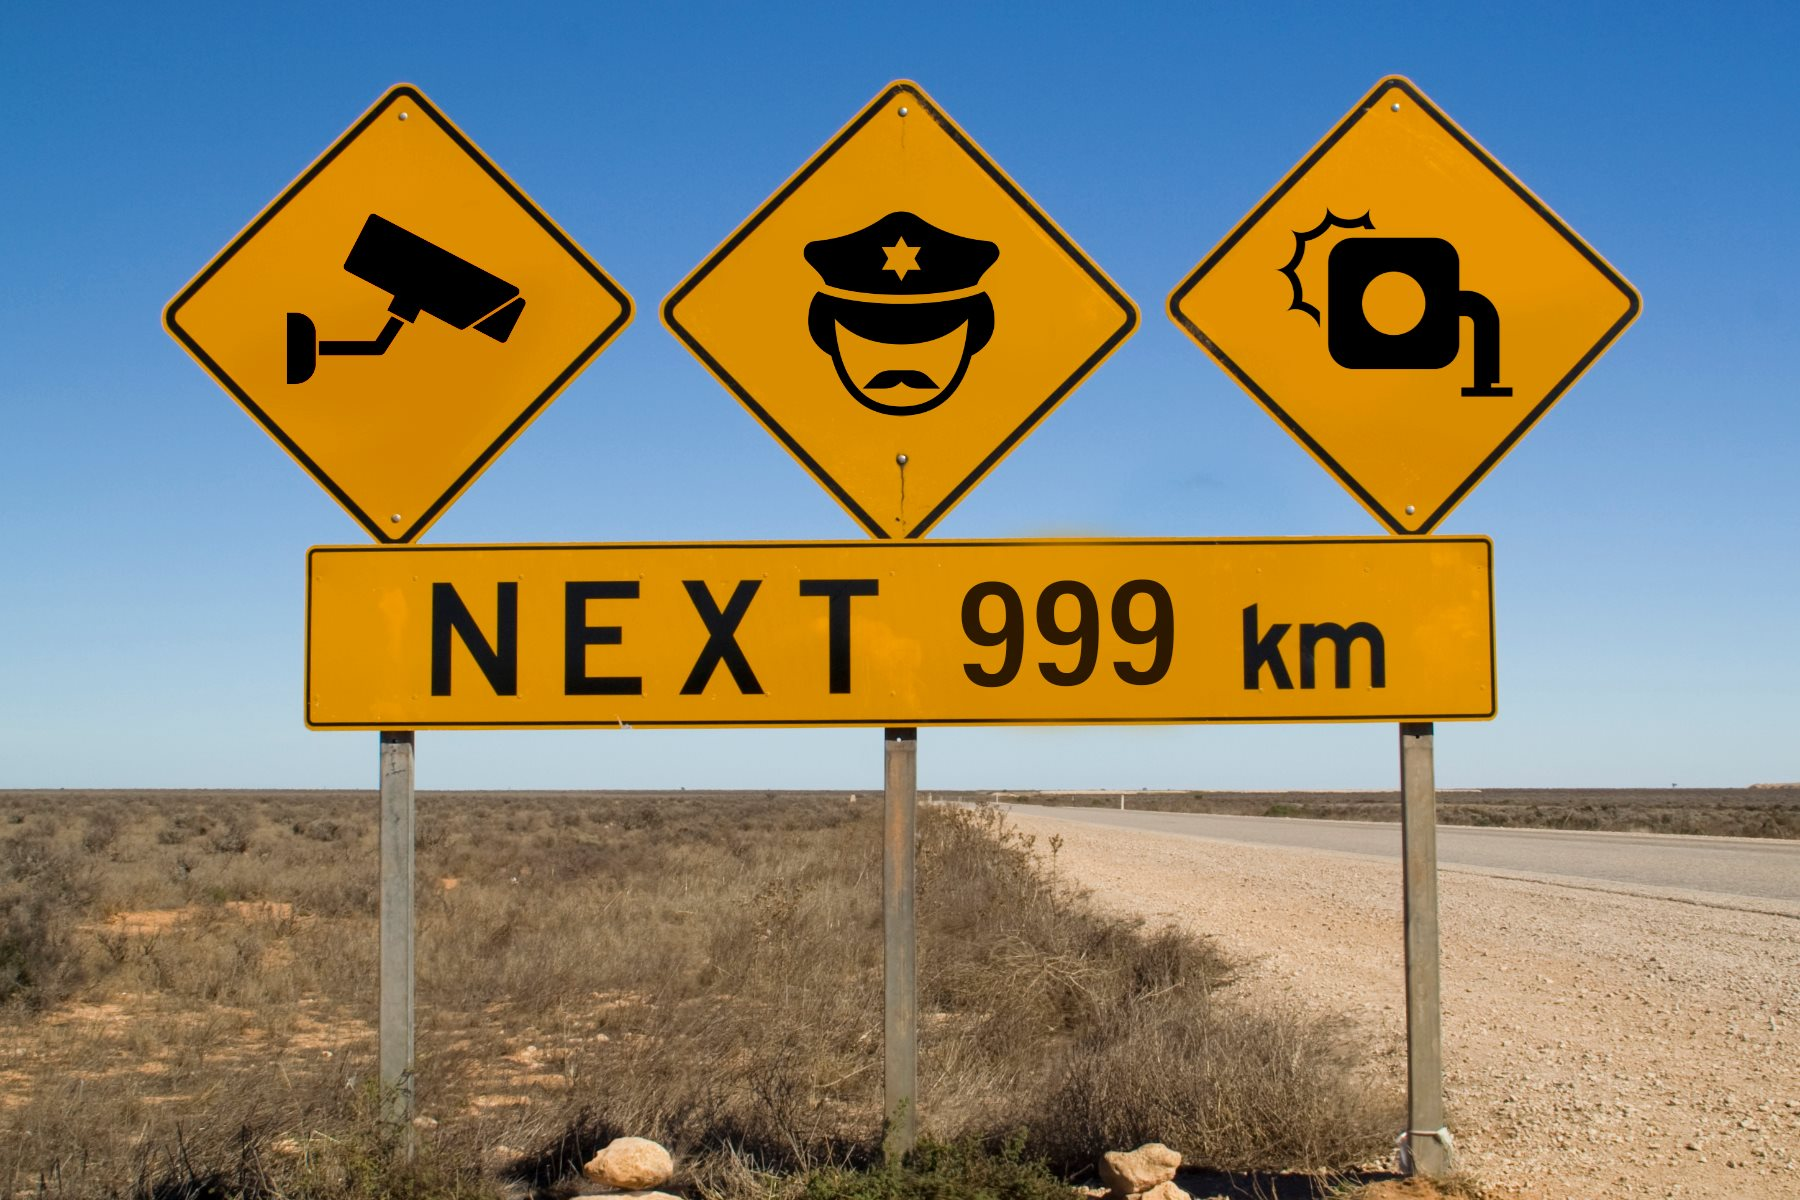 Australia, say goodbye to your driving freedom